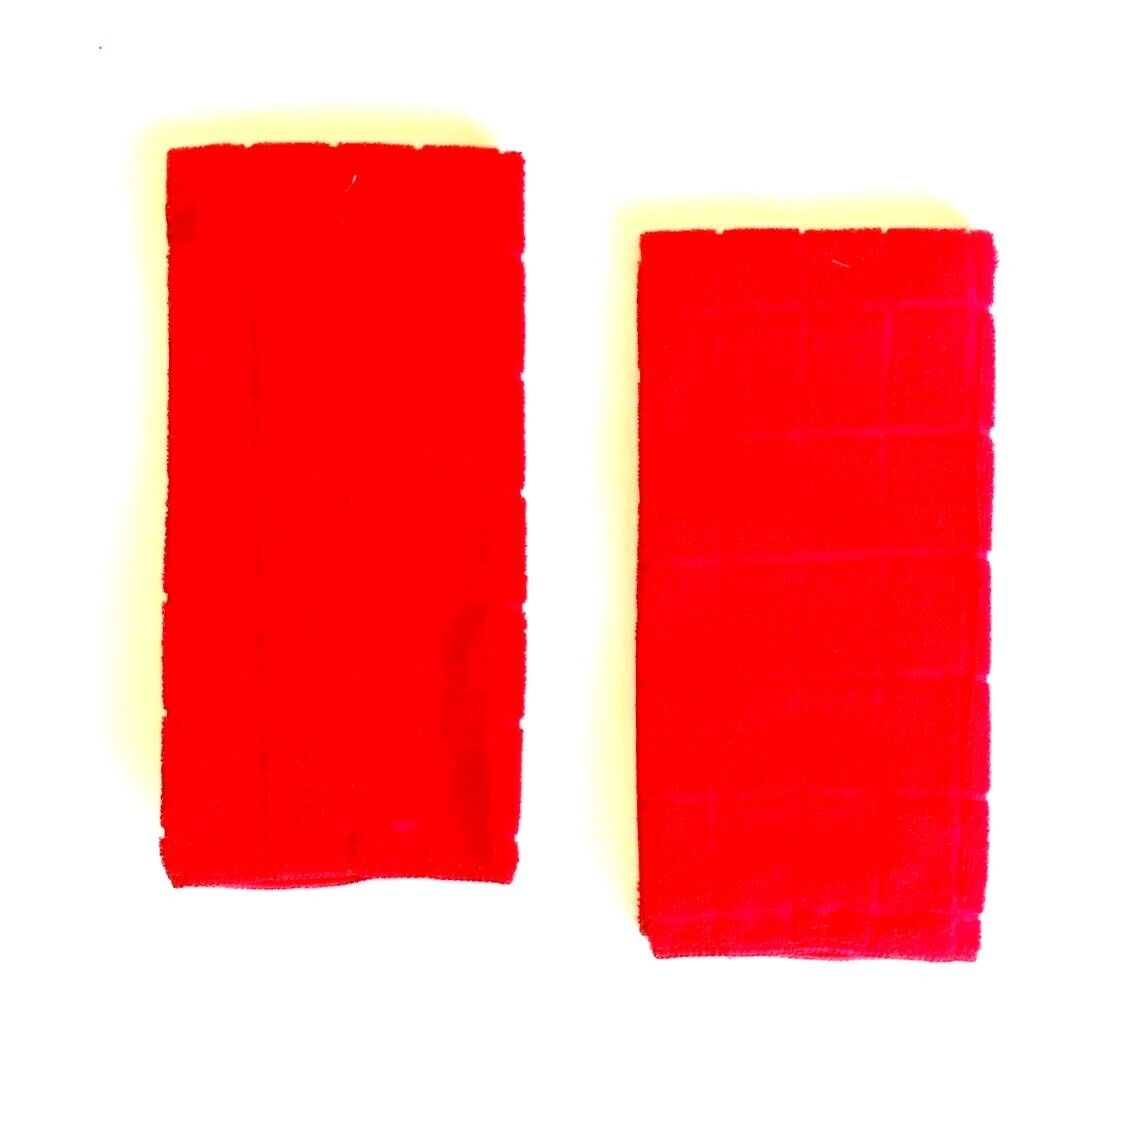 Kitchen Dish Hand Towels Solid Red Color Set of 2 15 x 25 in